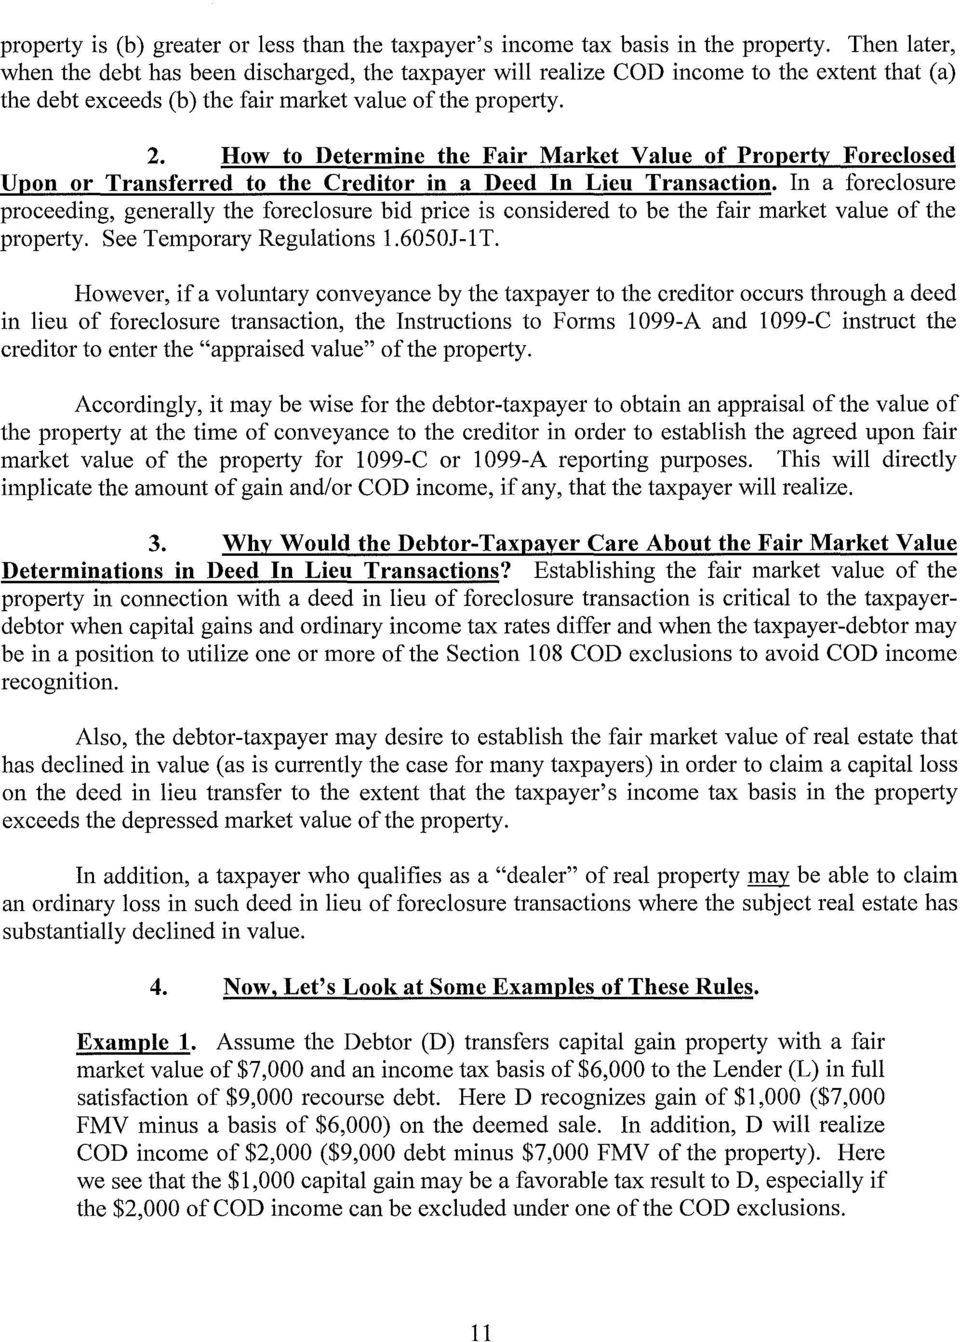 How to Determine the Fair Market Value of Property Foreclosed Upon or Transferred to the Creditor in a Deed In Lieu Transaction.